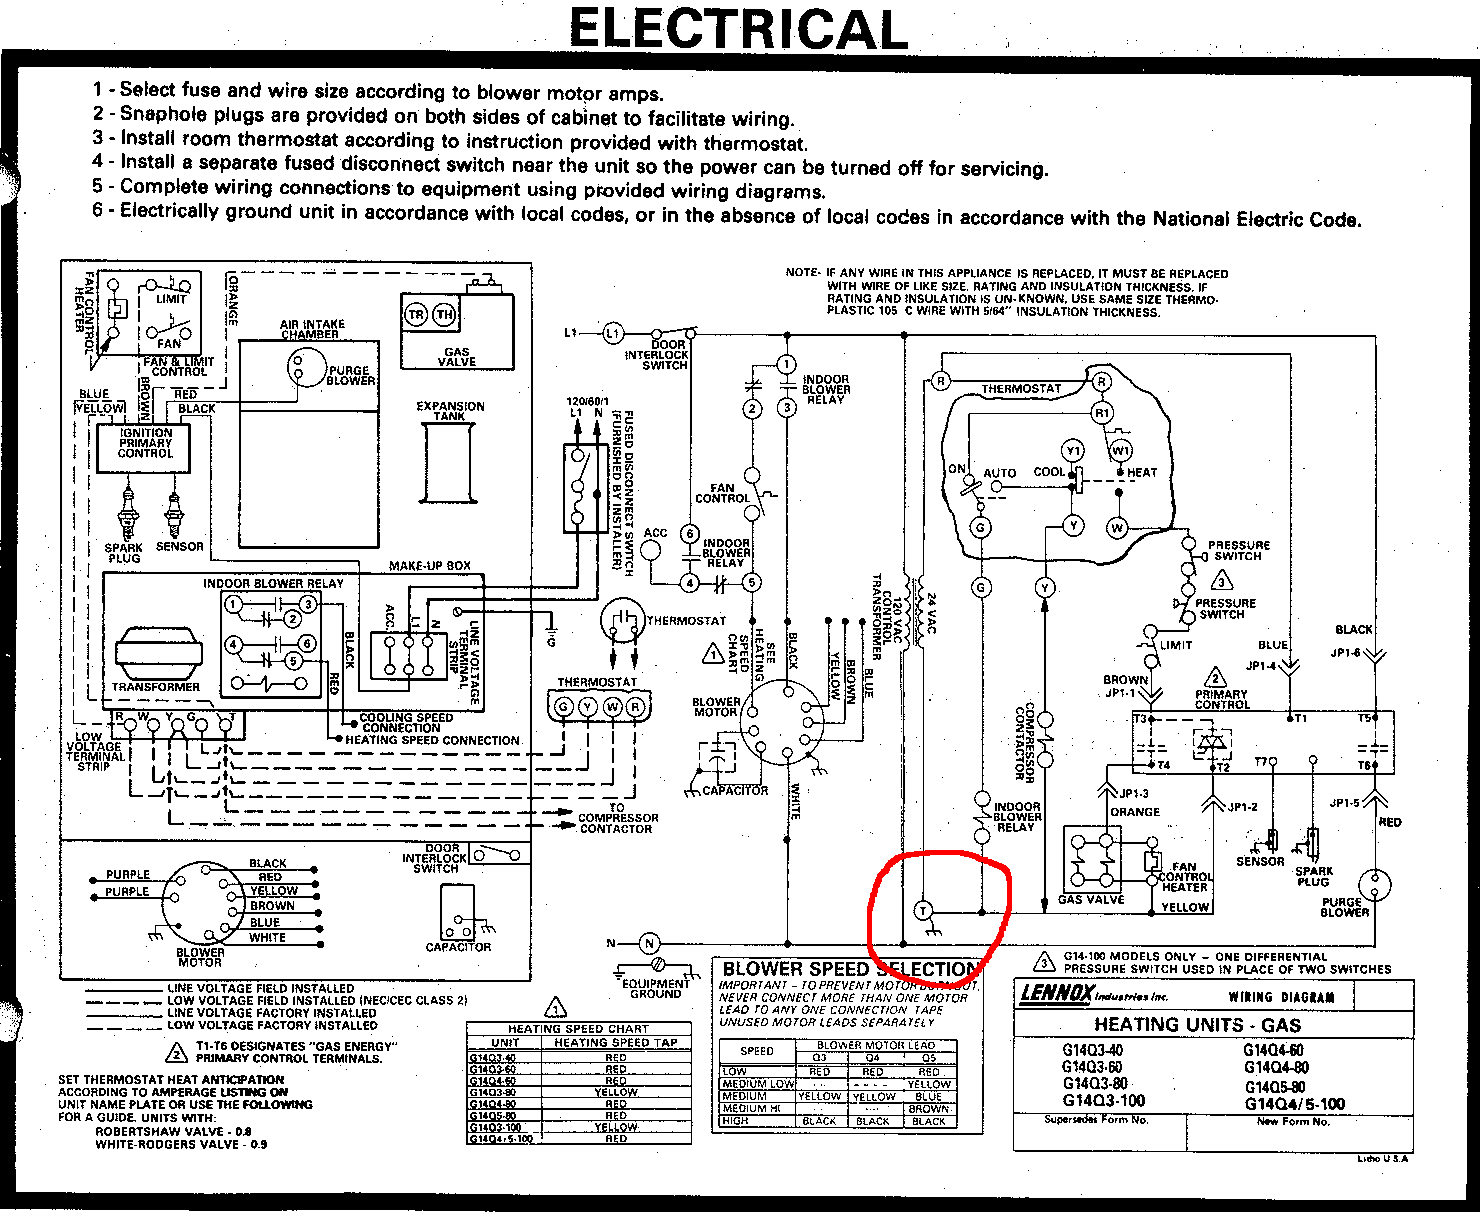 Boiler Hookup Diagrams - Data Wiring Diagram Today - Nest Wiring Diagram Gas Steam Heat